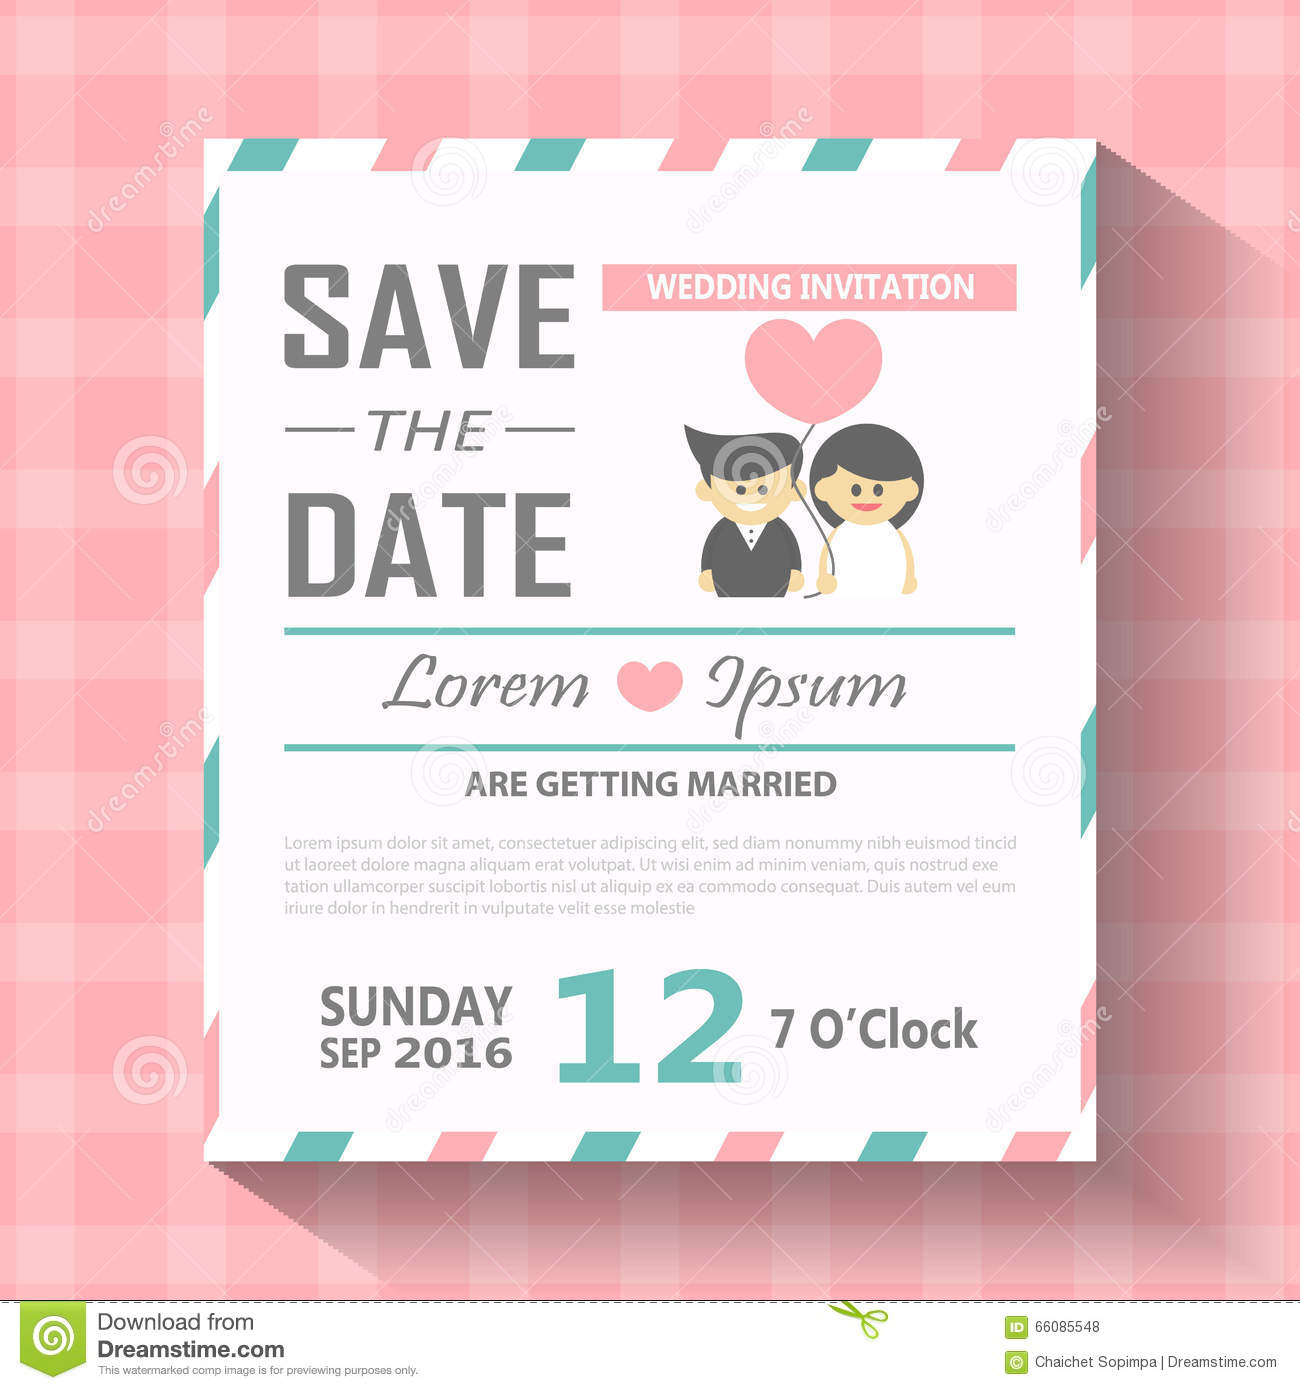 invitation editing - Yeni.mescale.co